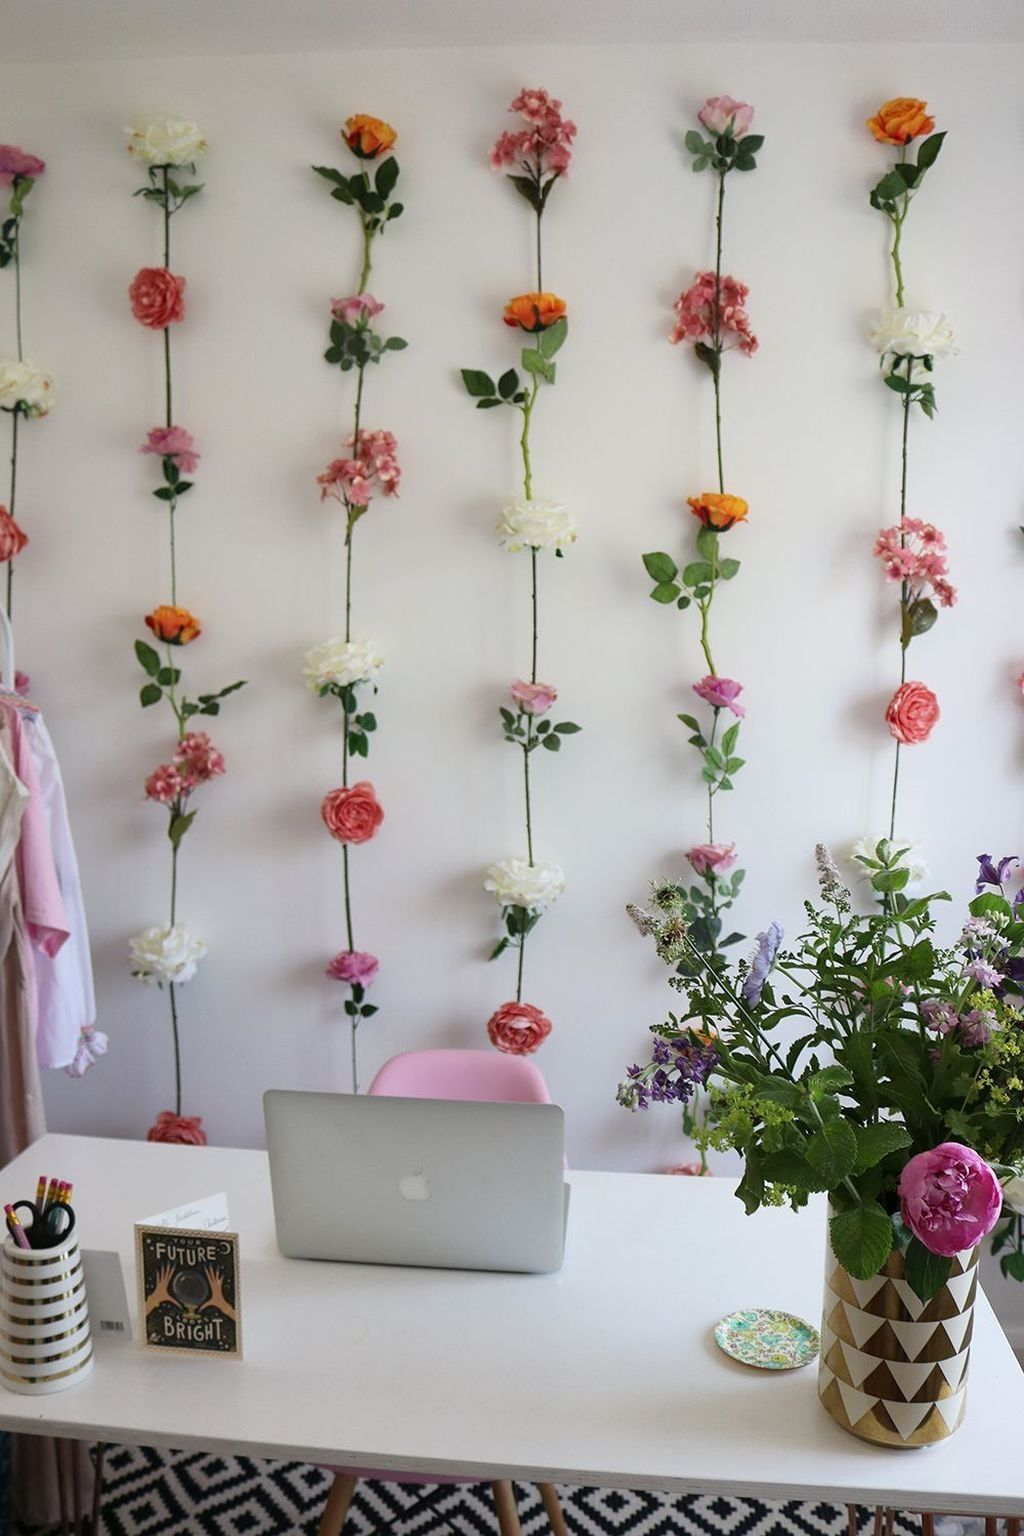 20 Outstanding Diy Flower Wall Decoration Ideas For You To Try Flower Room Decor Diy Flower Wall Flower Wall Decor